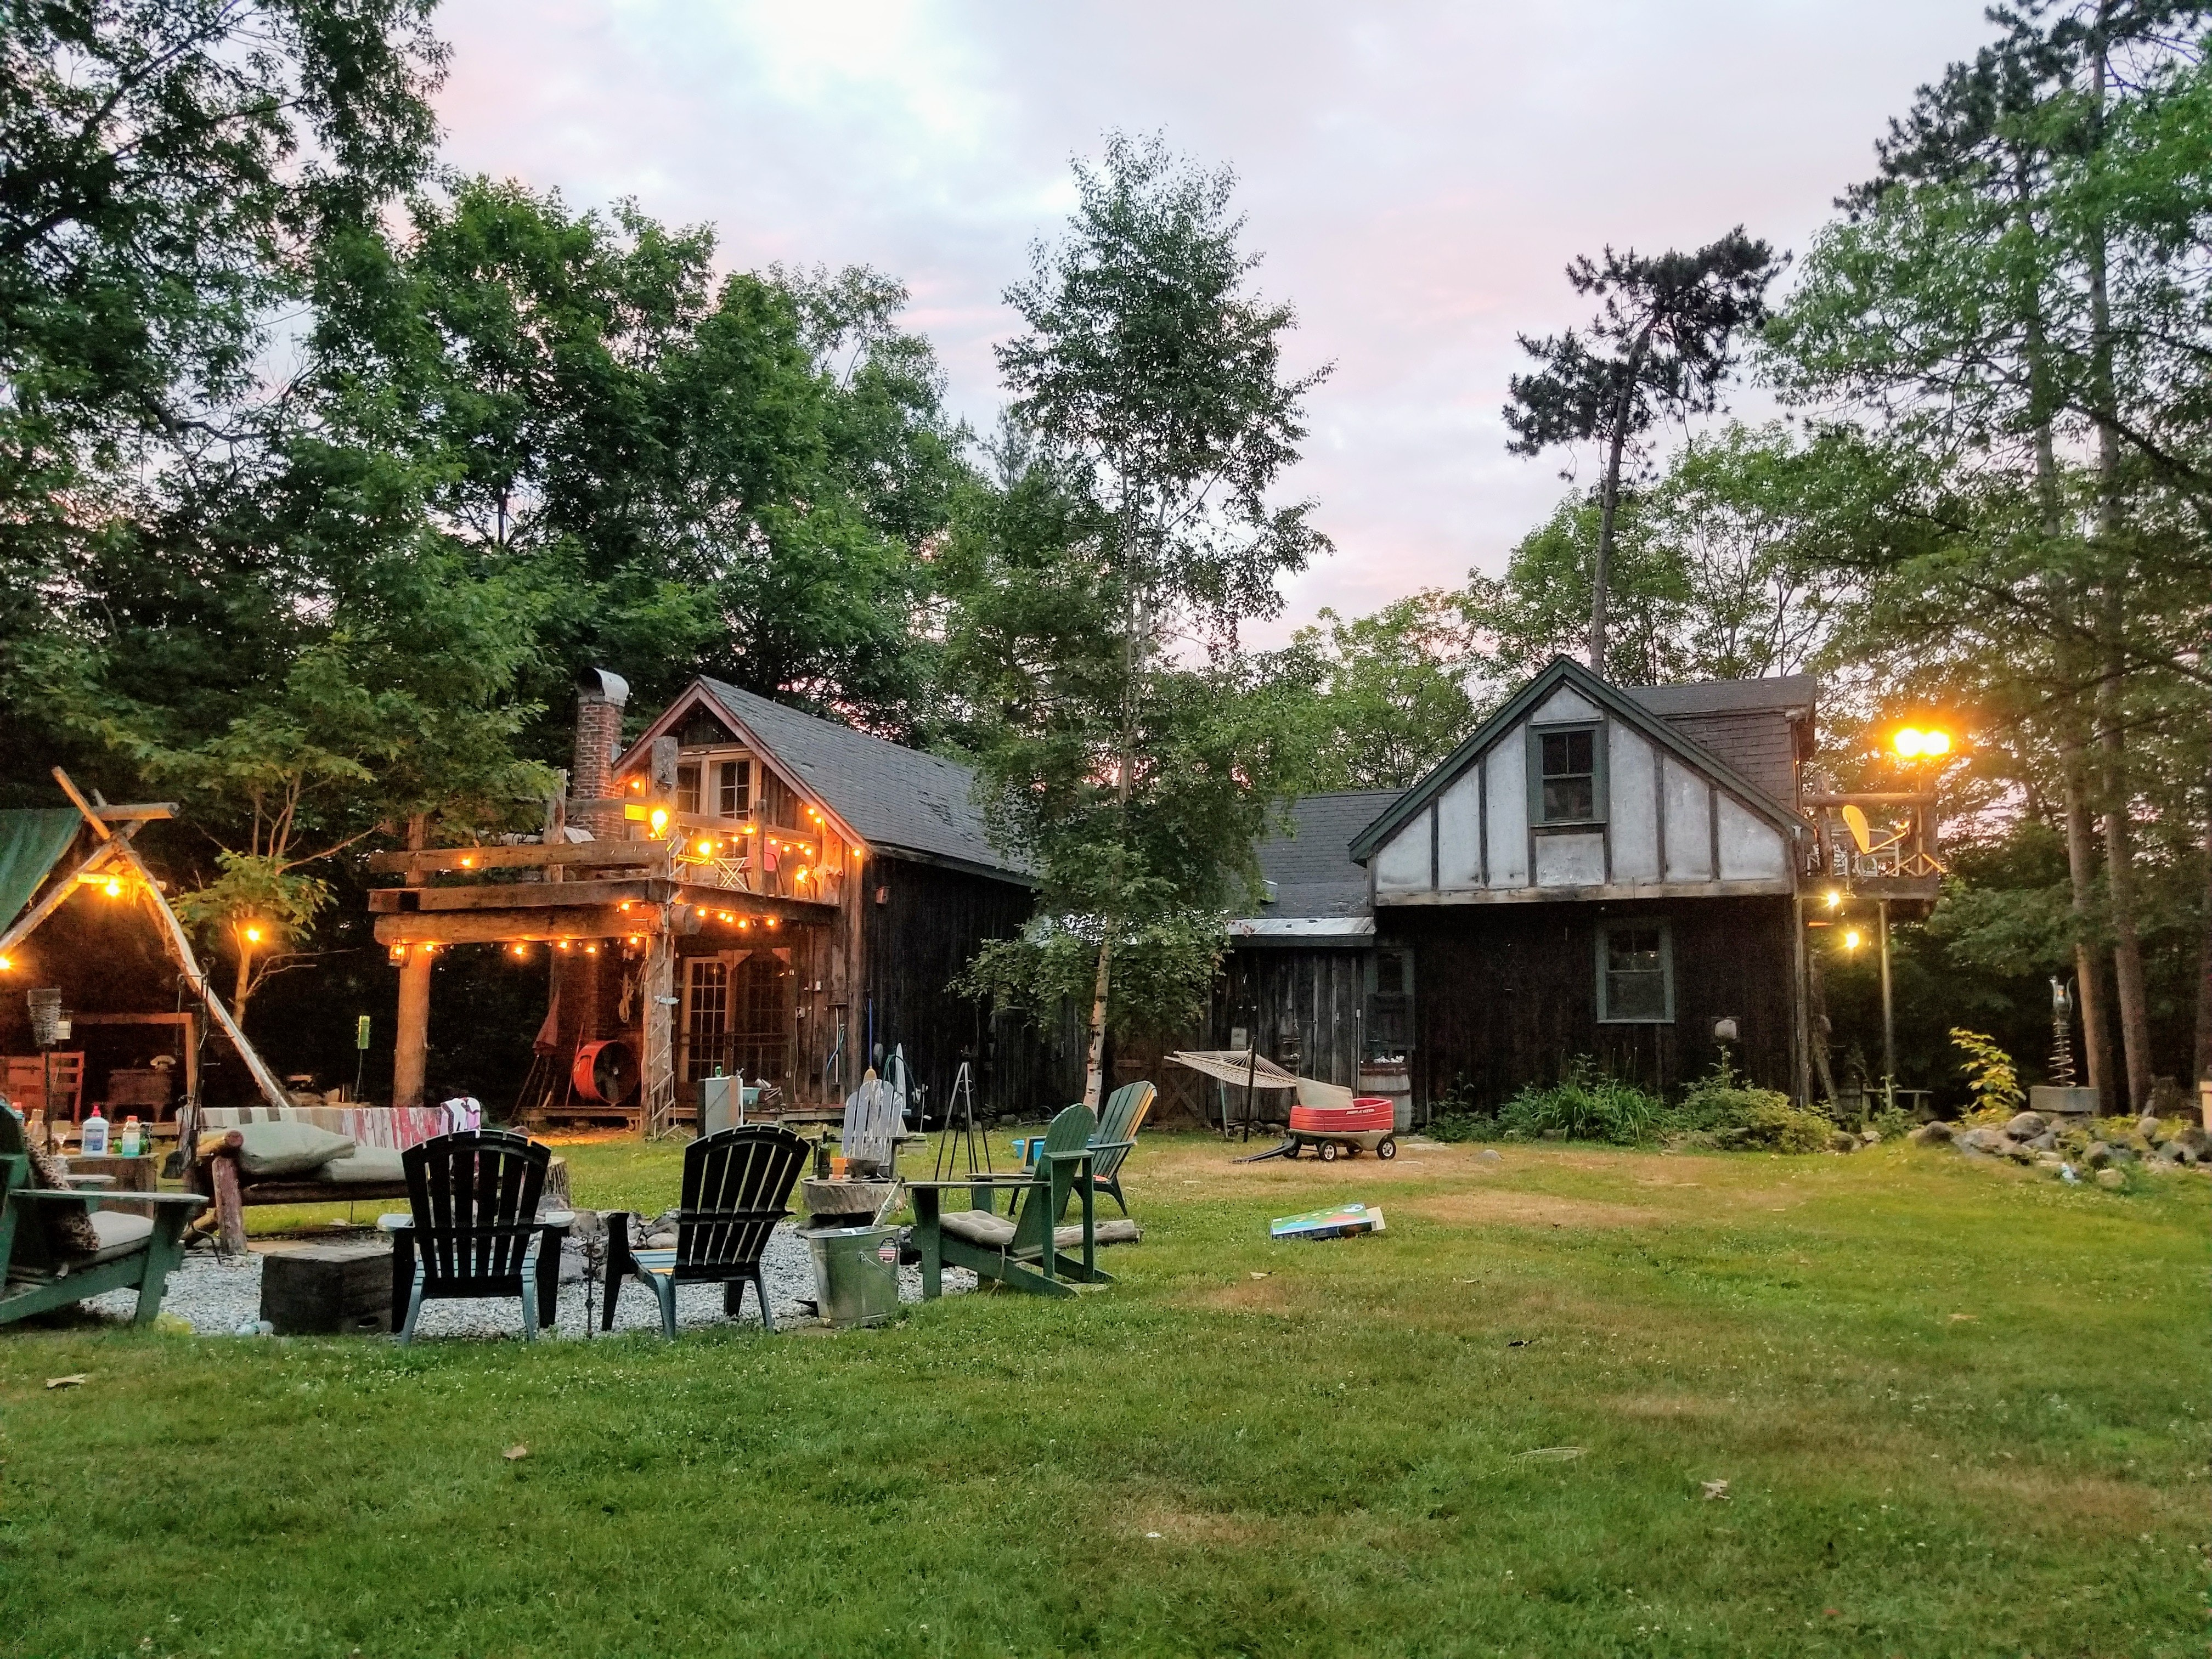 5 Ways to Enjoy Your Summer in Your Very Own Backyard